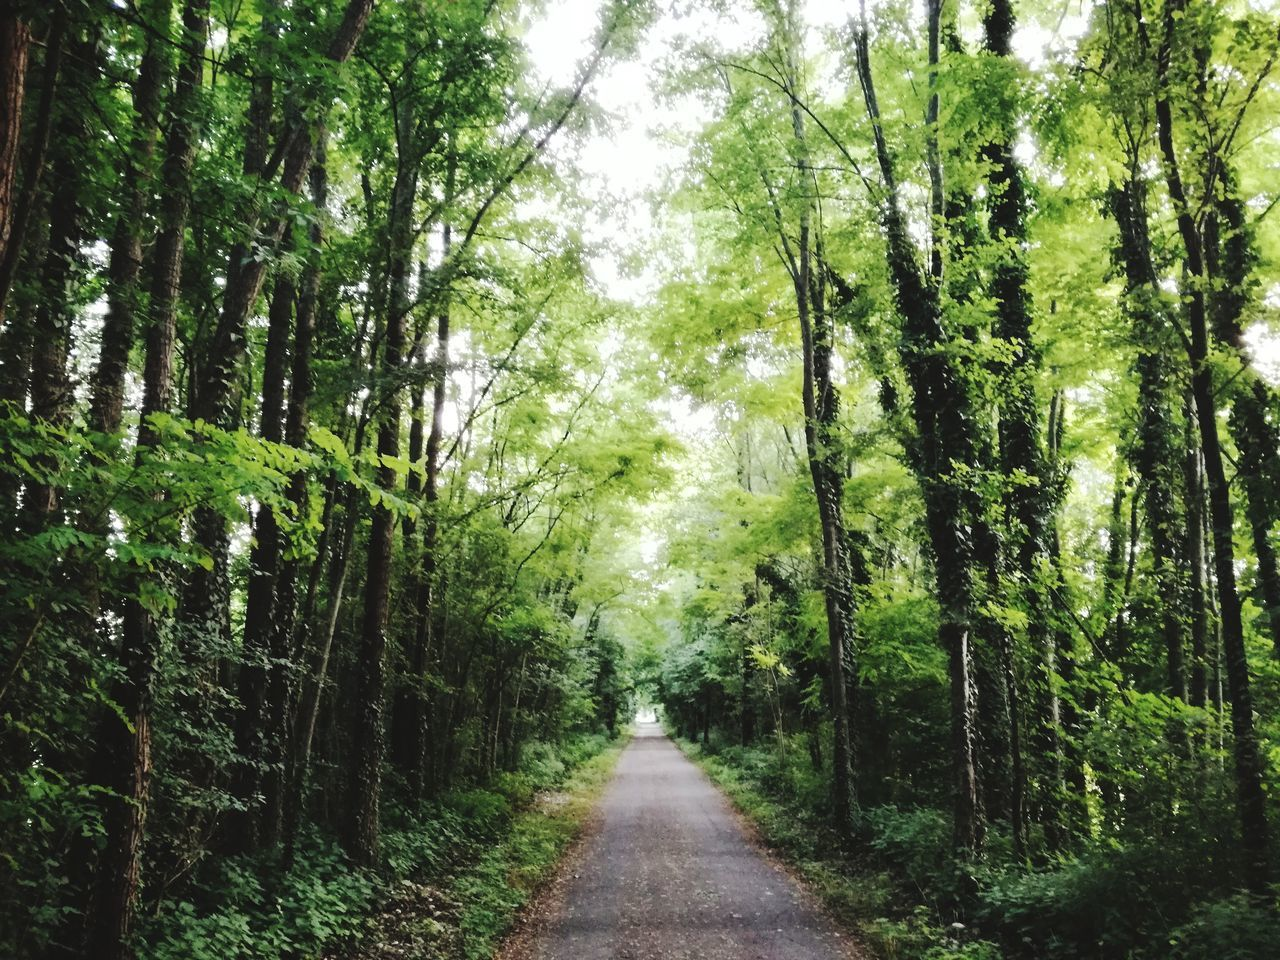 the way forward, plant, forest, direction, tree, land, diminishing perspective, green color, beauty in nature, nature, tranquility, growth, road, tranquil scene, day, no people, transportation, non-urban scene, woodland, scenics - nature, outdoors, bamboo - plant, treelined, long